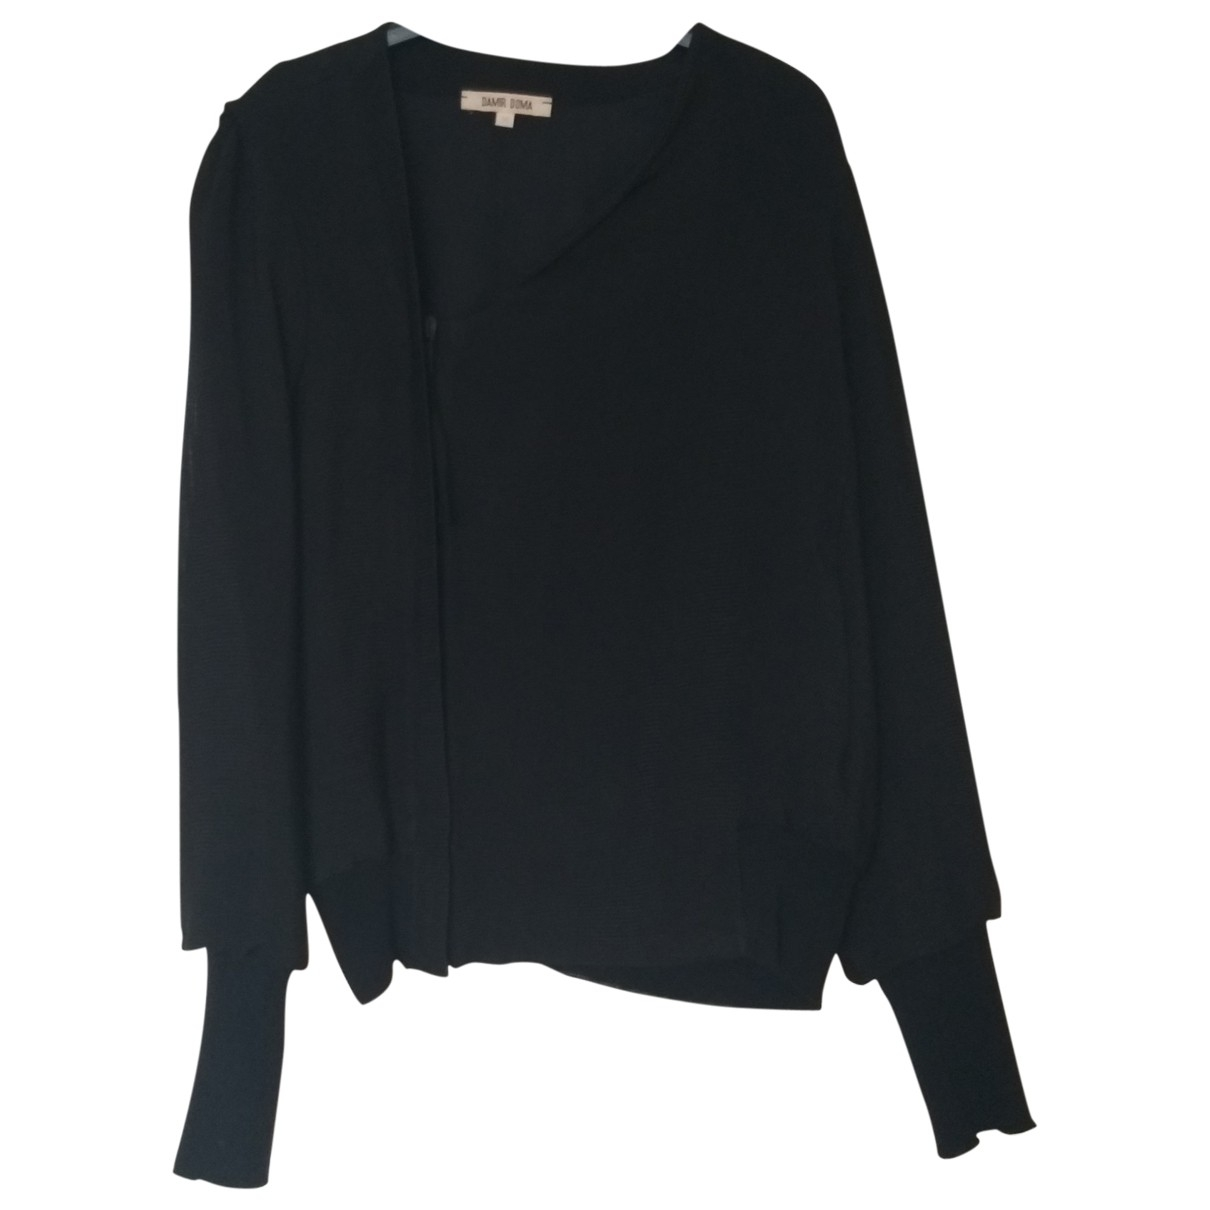 Damir Doma \N Black jacket for Women 34 FR